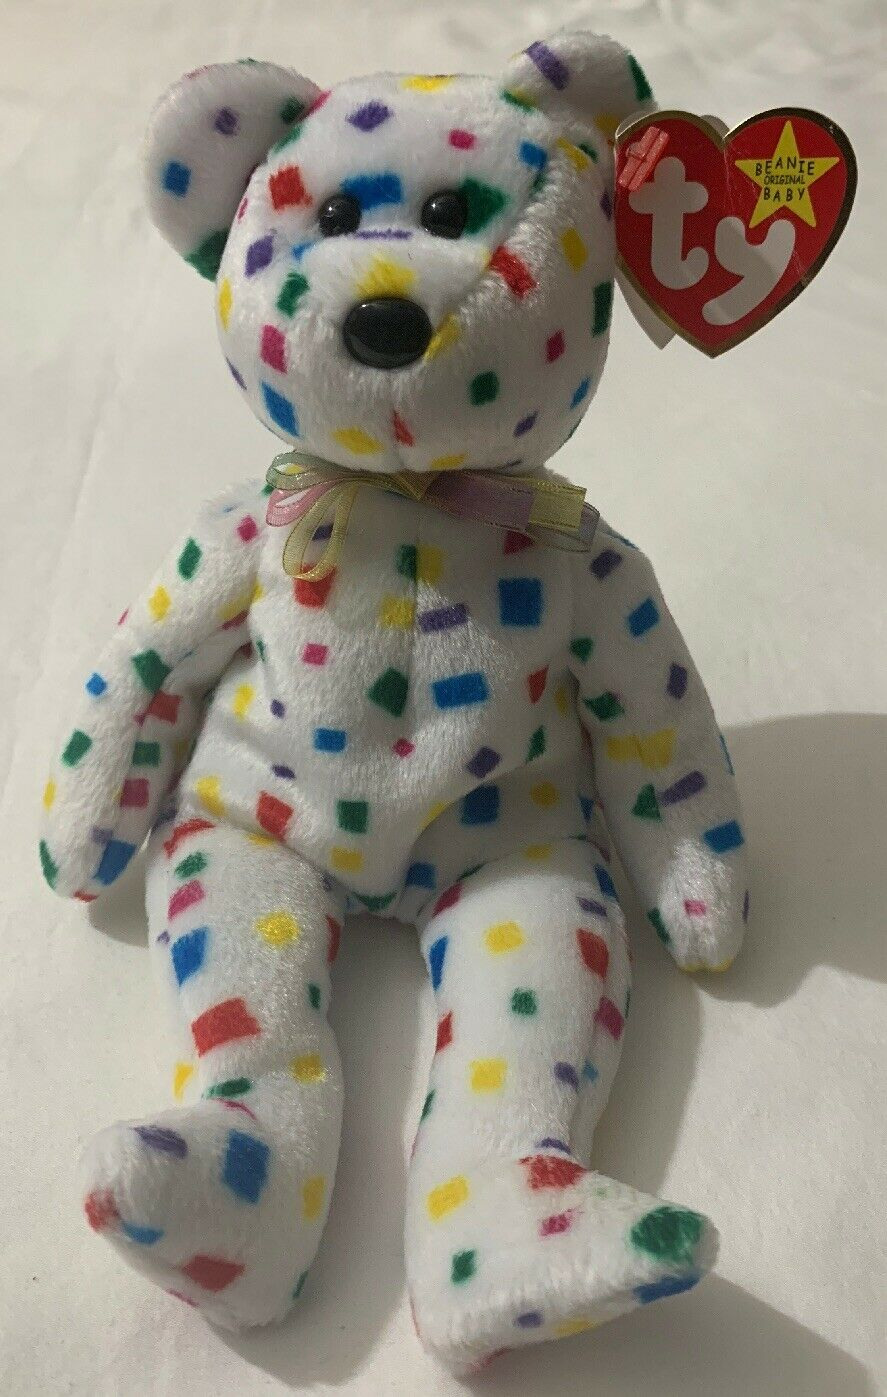 dc18916efc6 Details about Rare Errors Ty 2K Beanie Babies Bear White Confetti Red  Yellow Blue Green 50%OFF